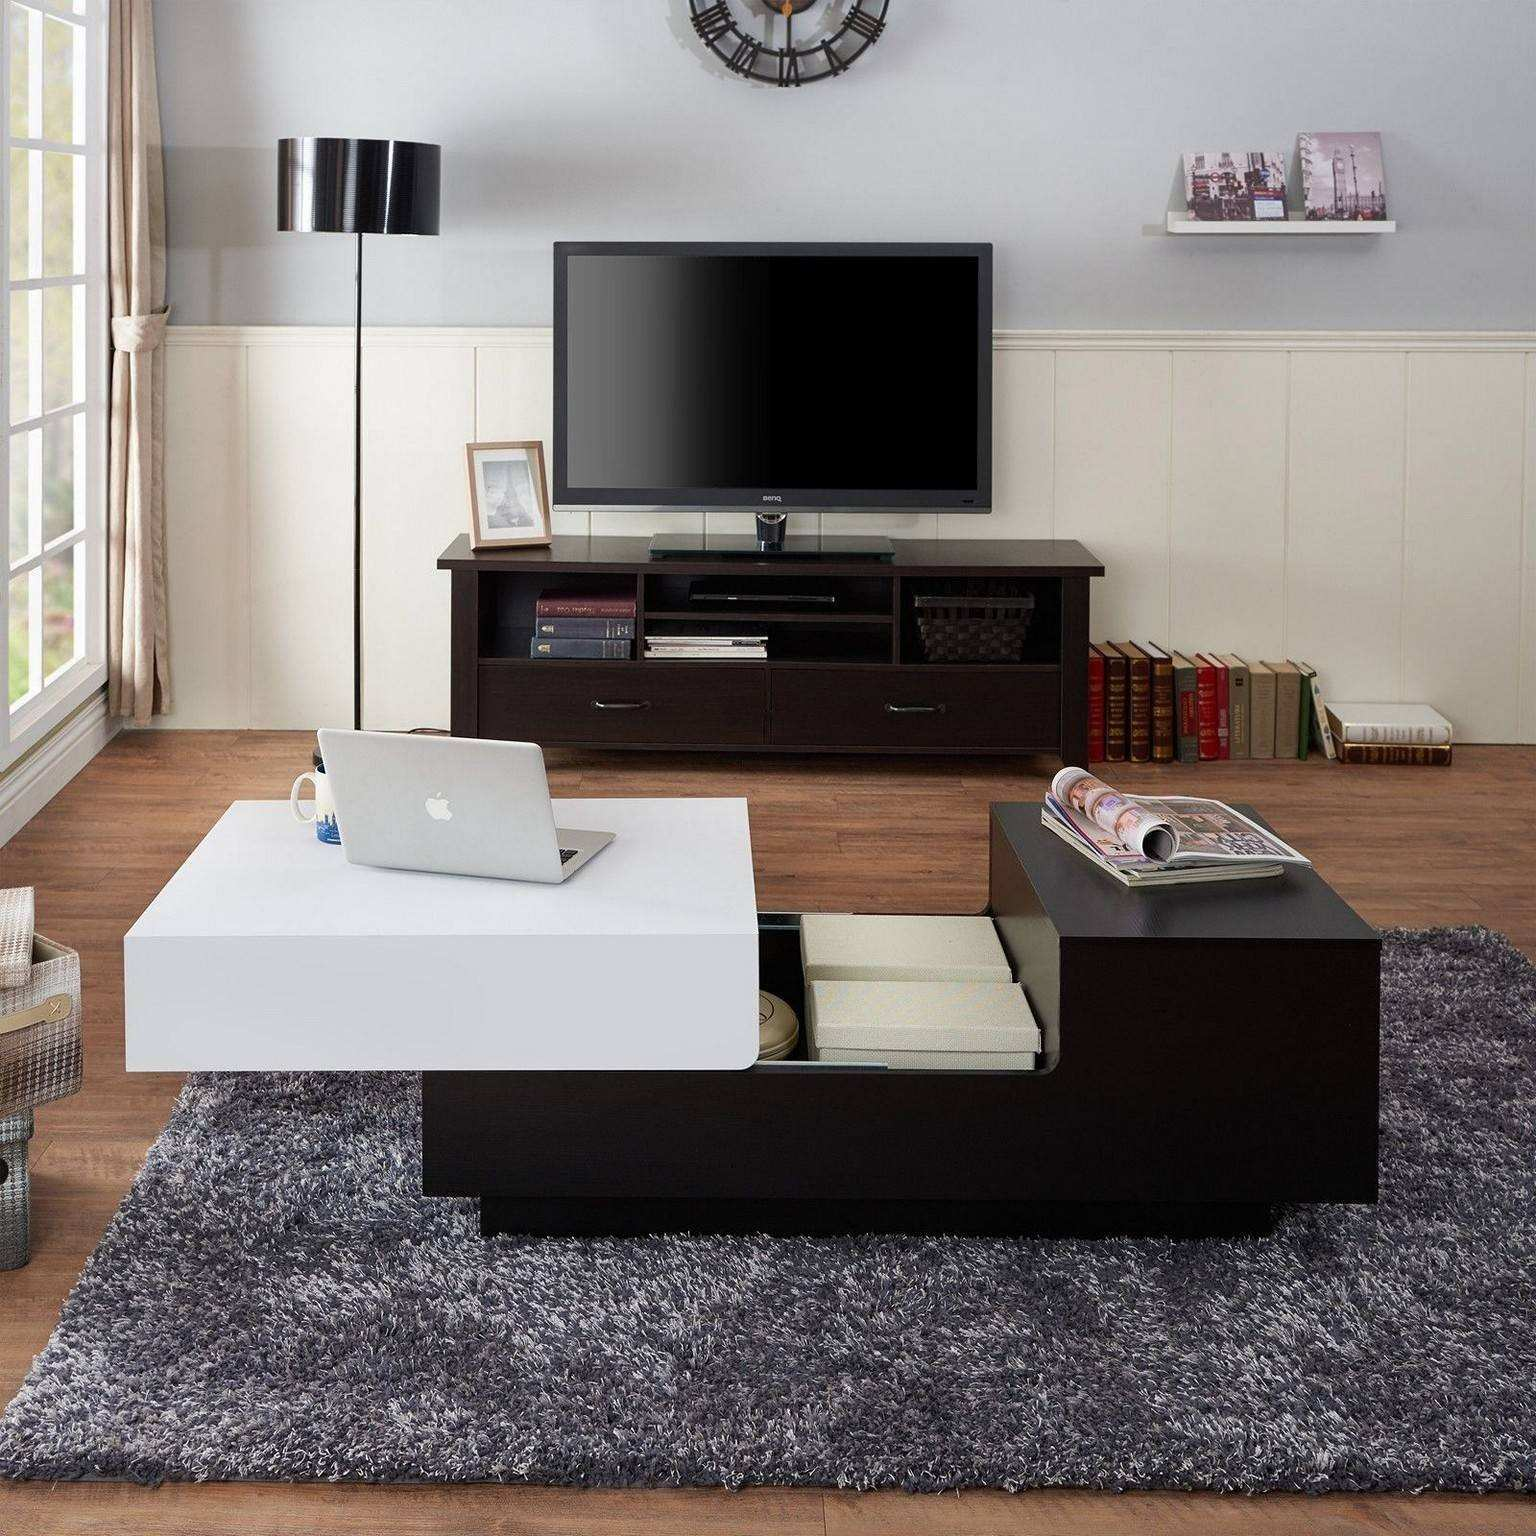 living room Coffee Table 3 Piece Coffee Table Sets Under $200